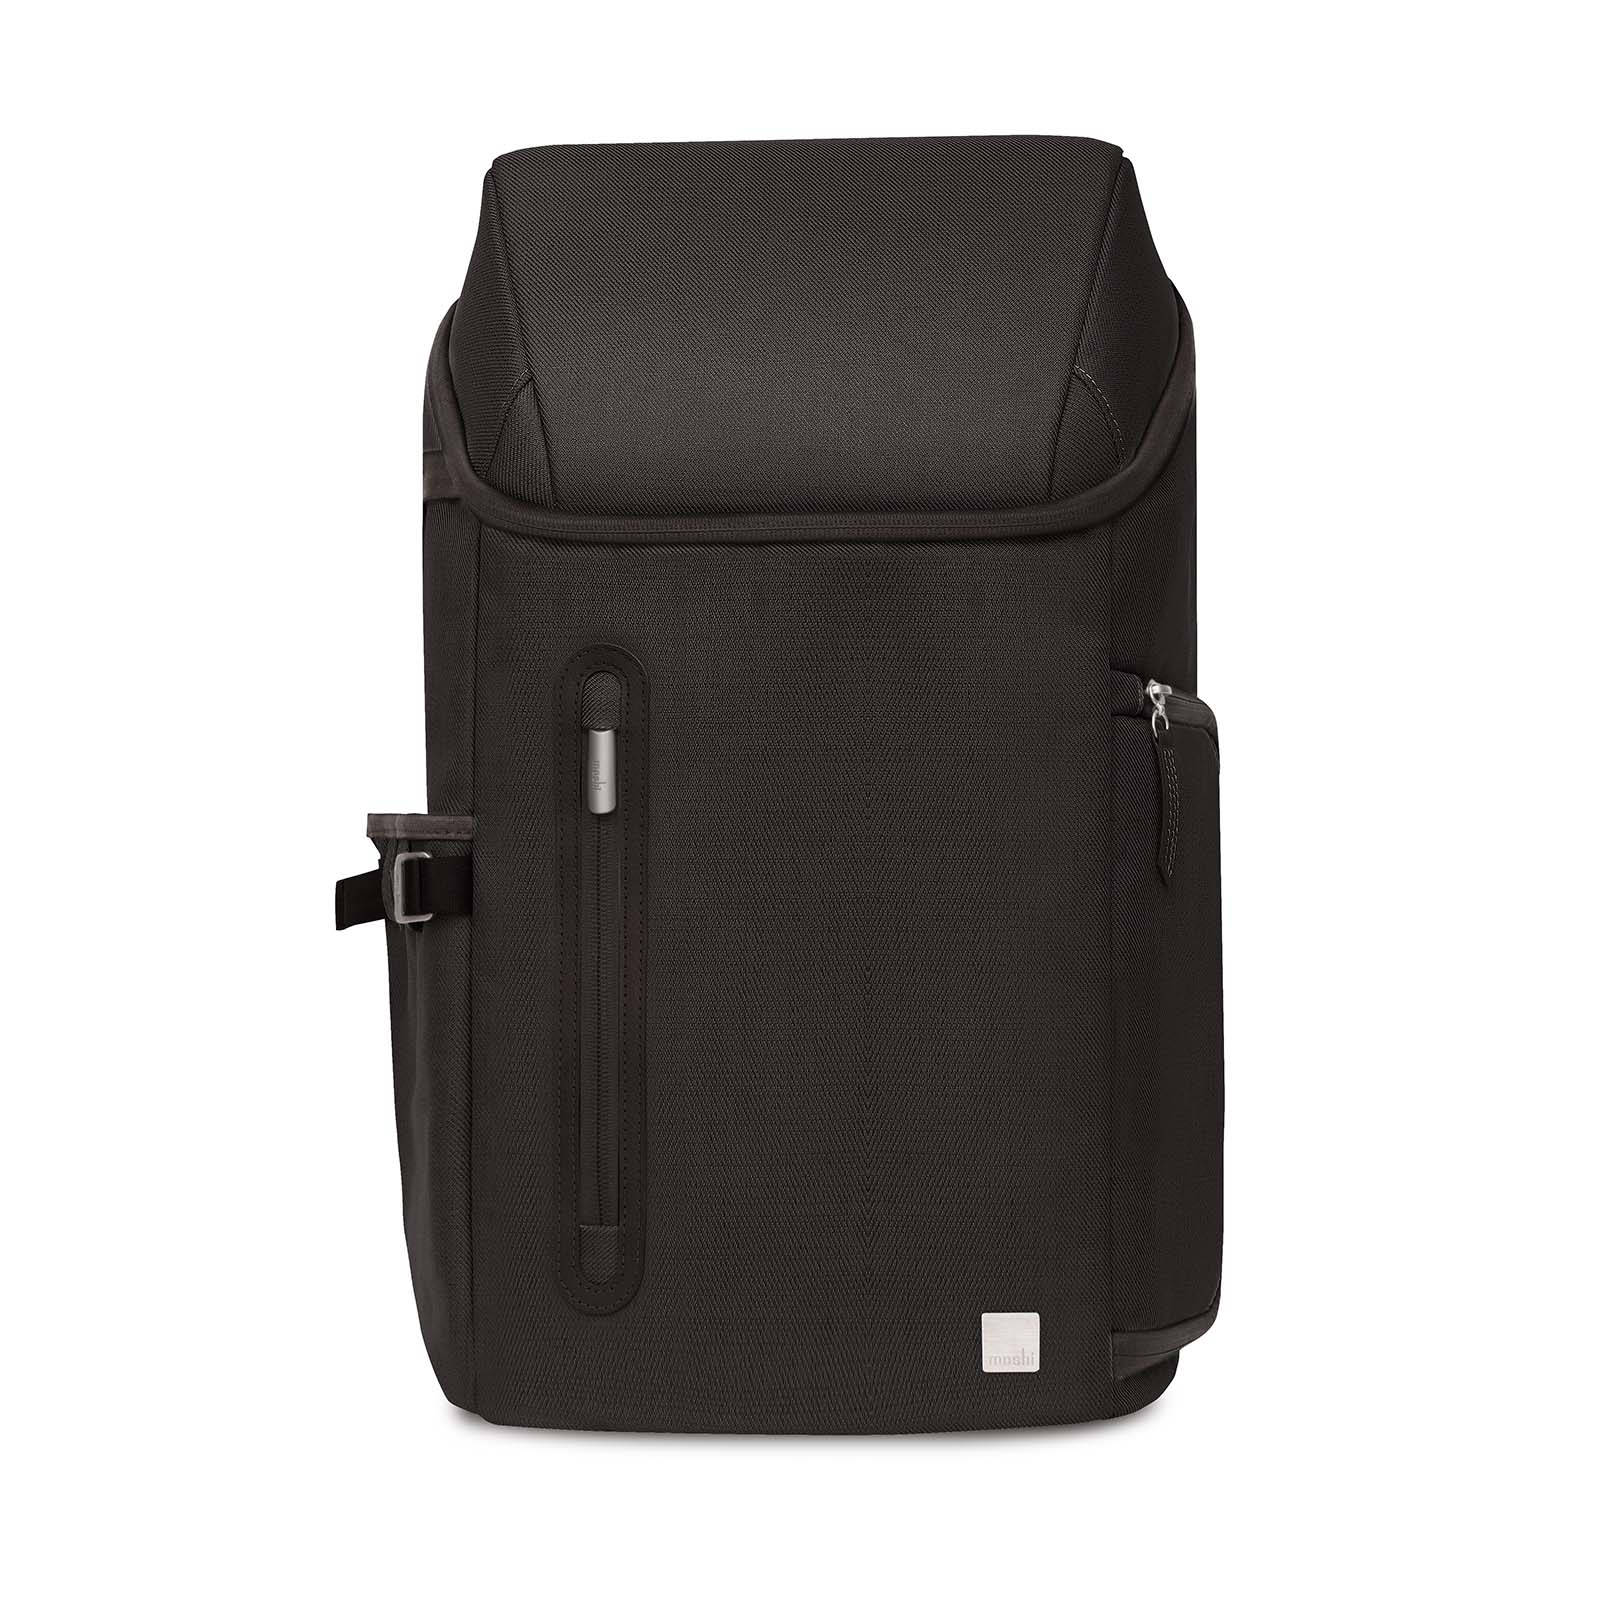 Moshi Arcus Multifunction Backpack 15inch - Charcoal Black